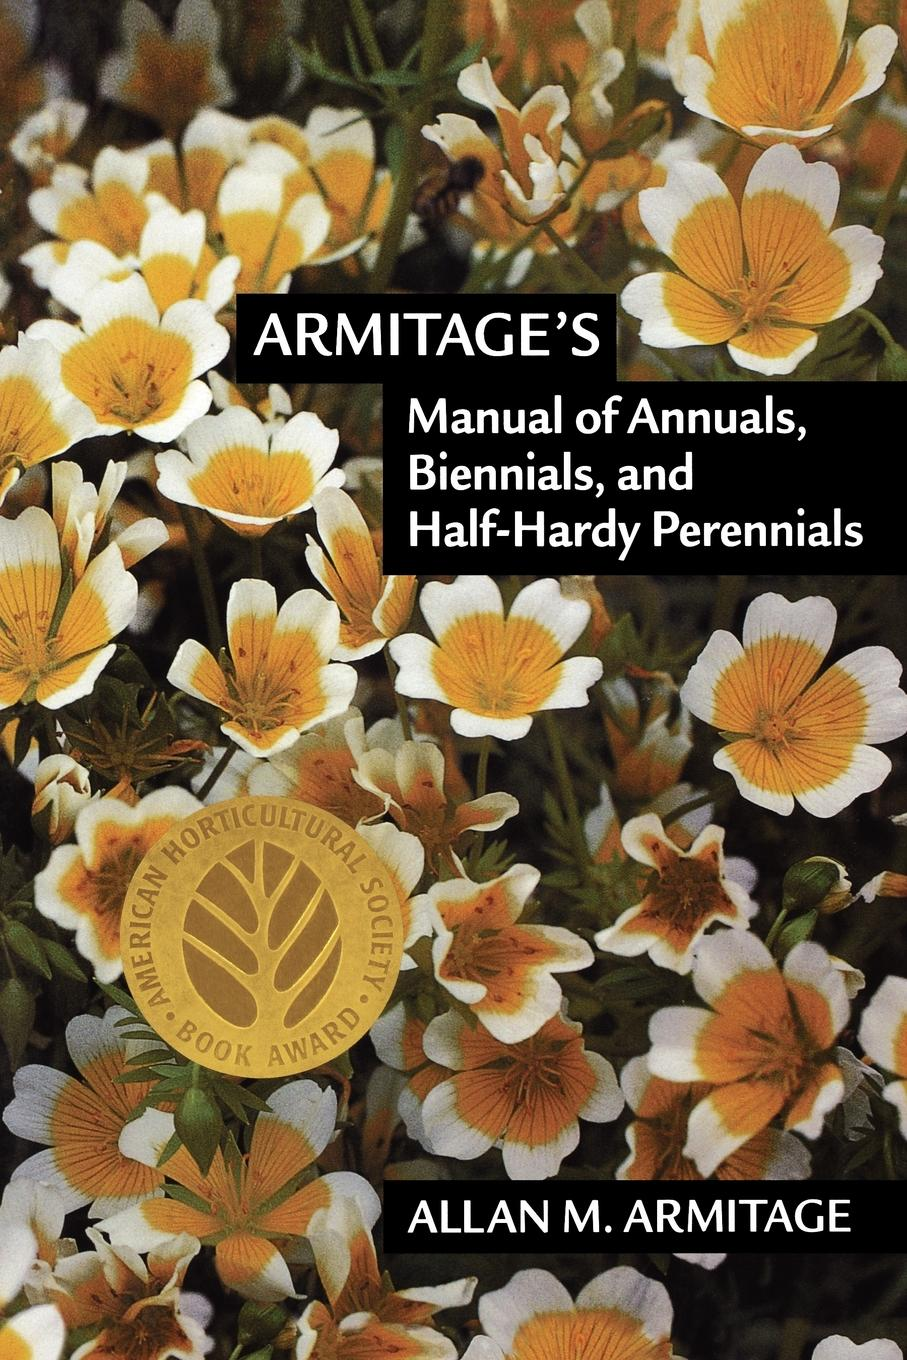 Allan M. Armitage Armitage.s Manual of Annuals, Biennials, and Half-Hardy Perennials 2018 successful teacher workbook this half year edition notepad planner effective time management manual b5